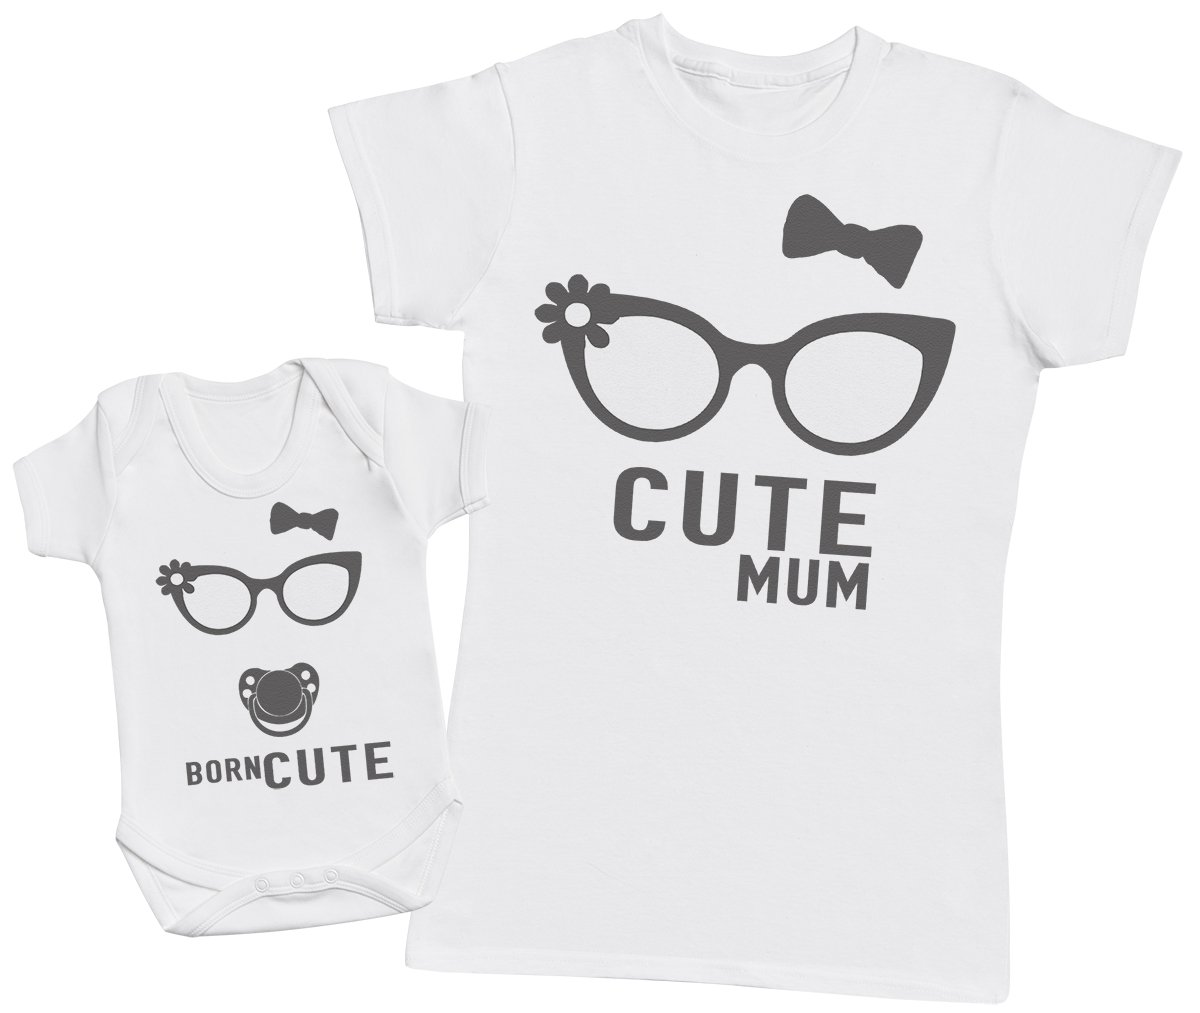 Born Cute - Matching Mother Baby Gift Set - Womens T Shirt & Baby Bodysuit